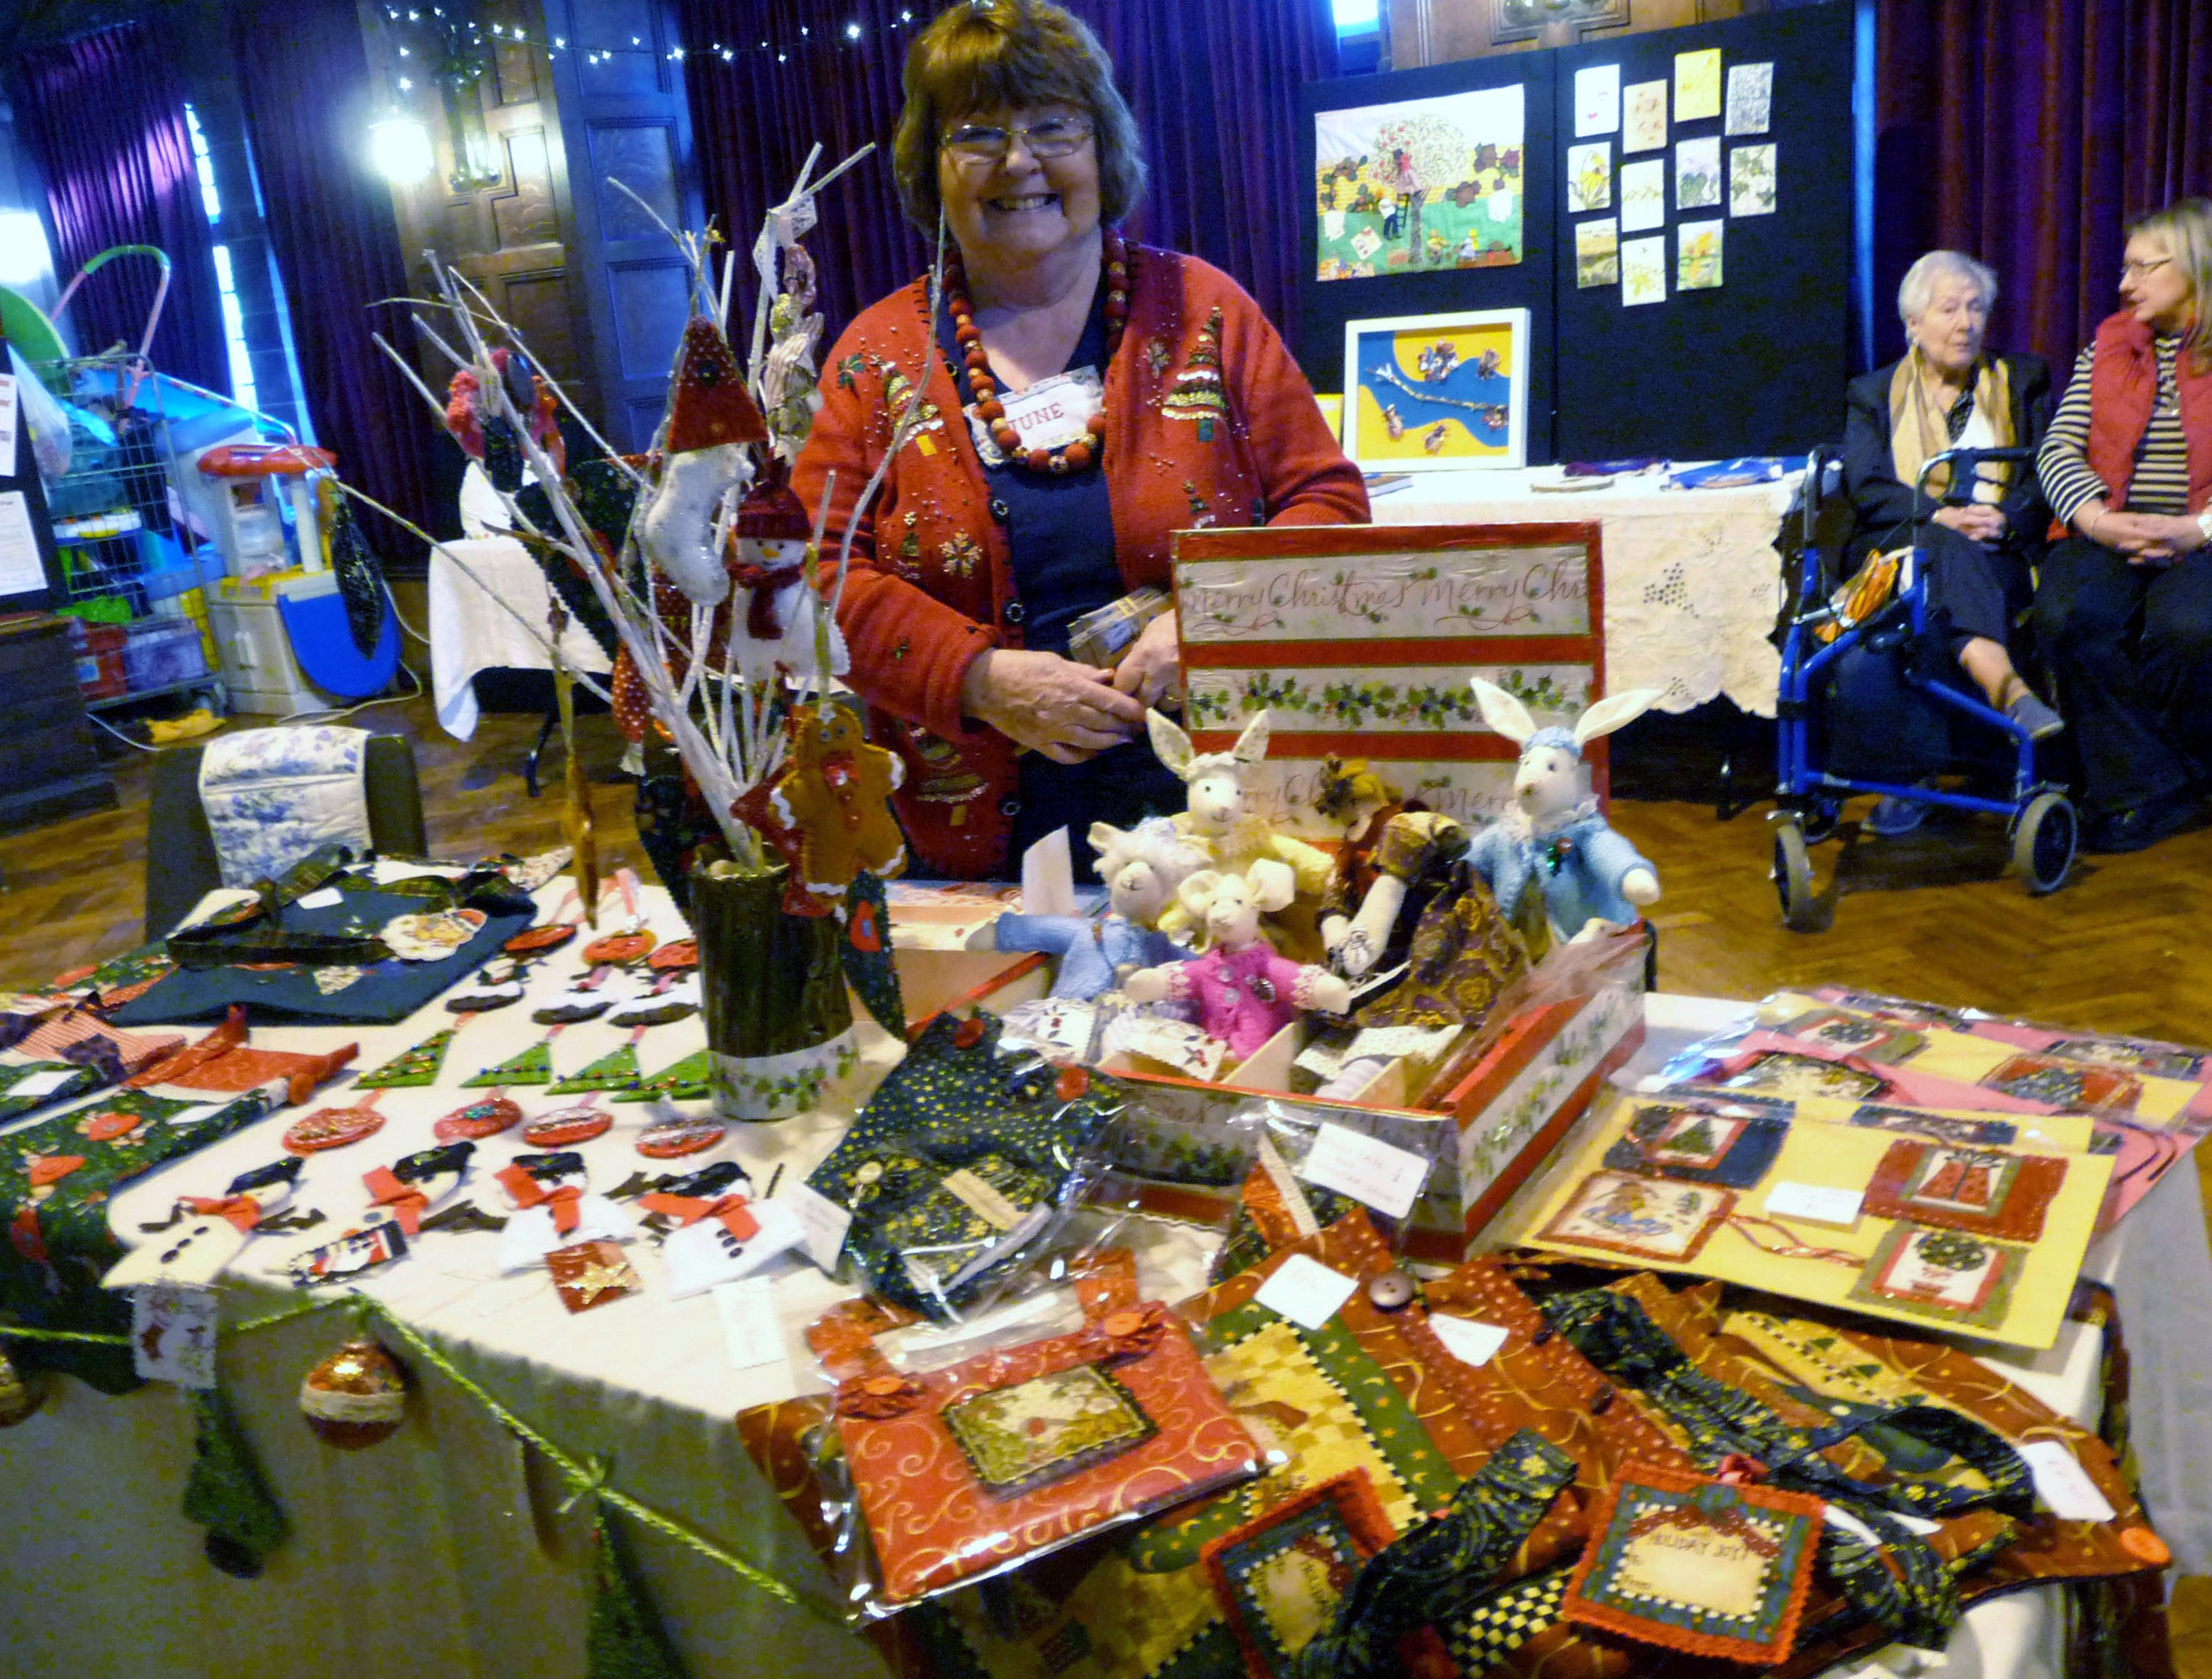 June Howard with her stall before the doors opened